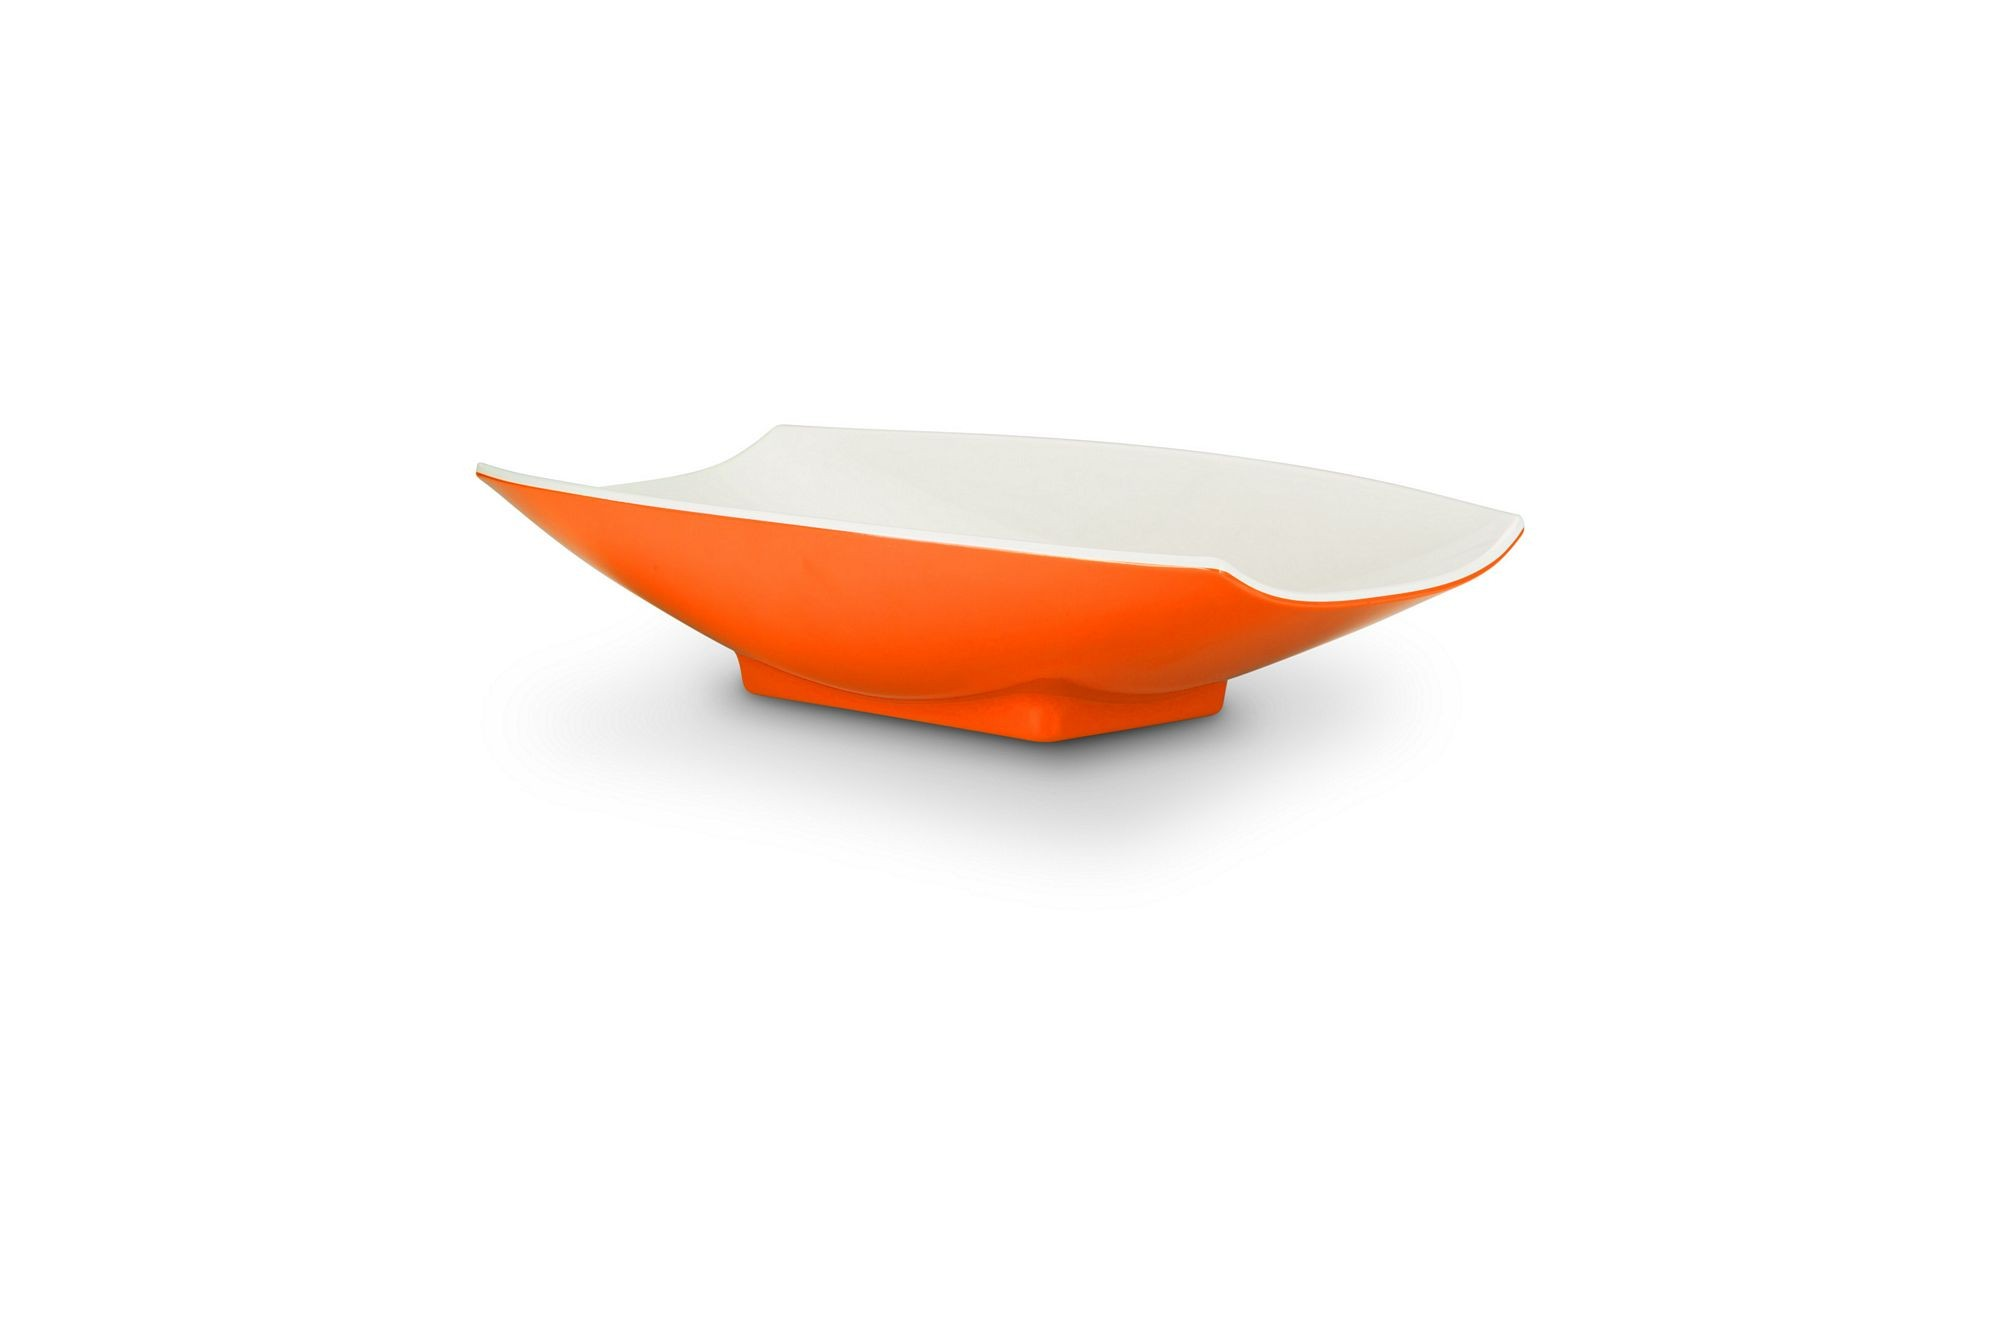 Bon Chef 53703-2ToneOrange Melamine Curves Bowl, Orange Outside/White Inside 1 Qt.